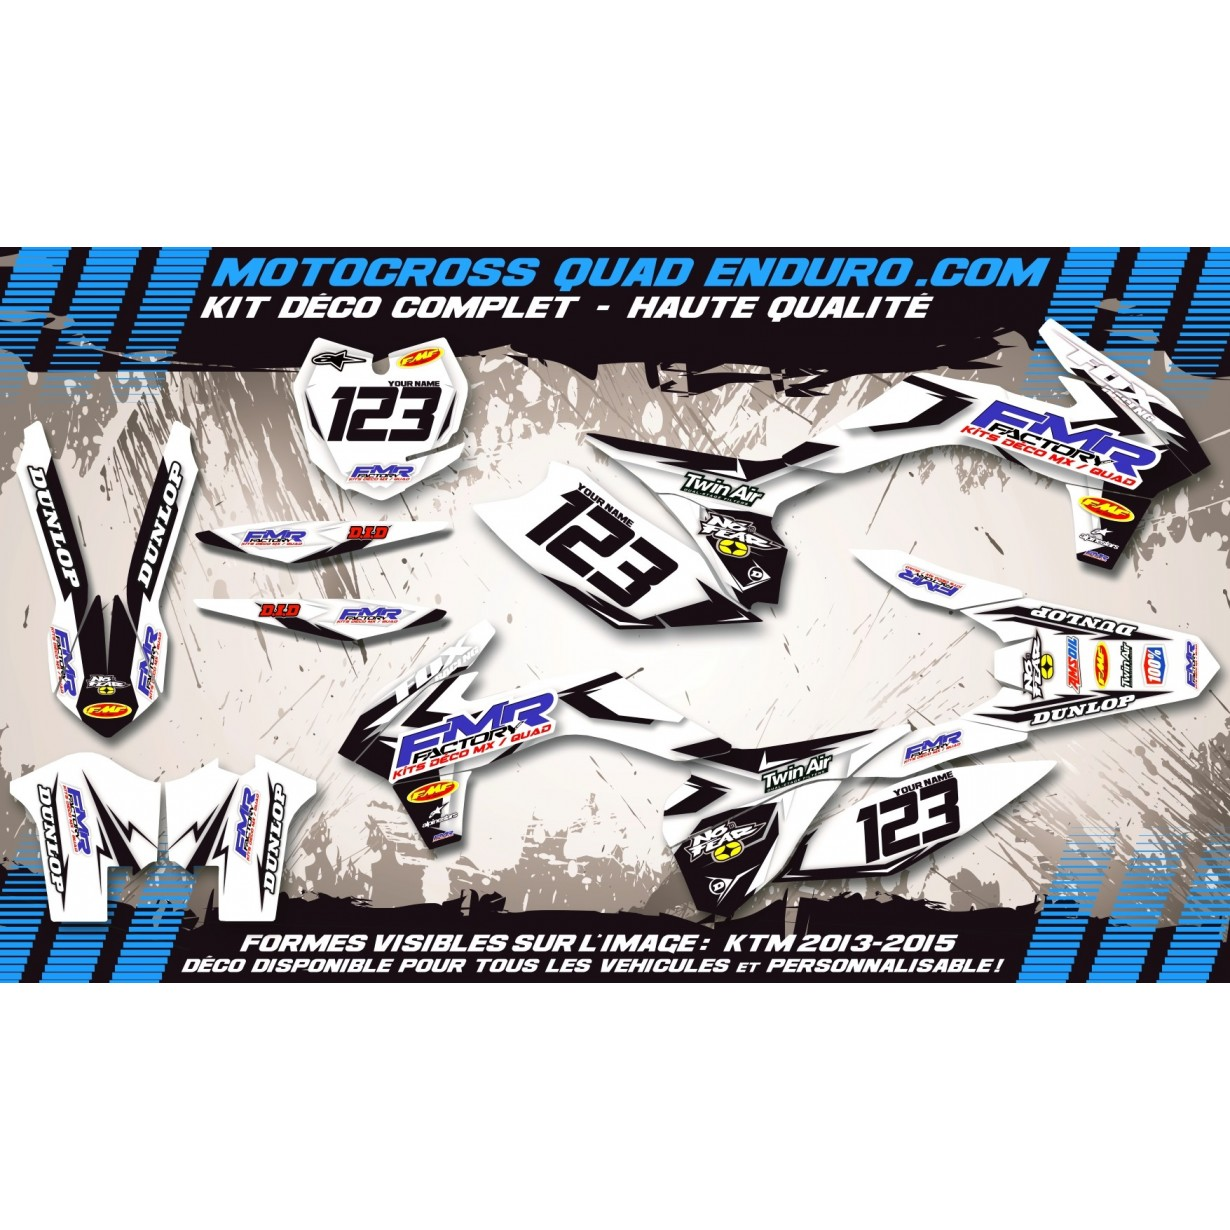 KIT DÉCO Perso 700 KFX Quad Fmr factory WT Edition MA13WT